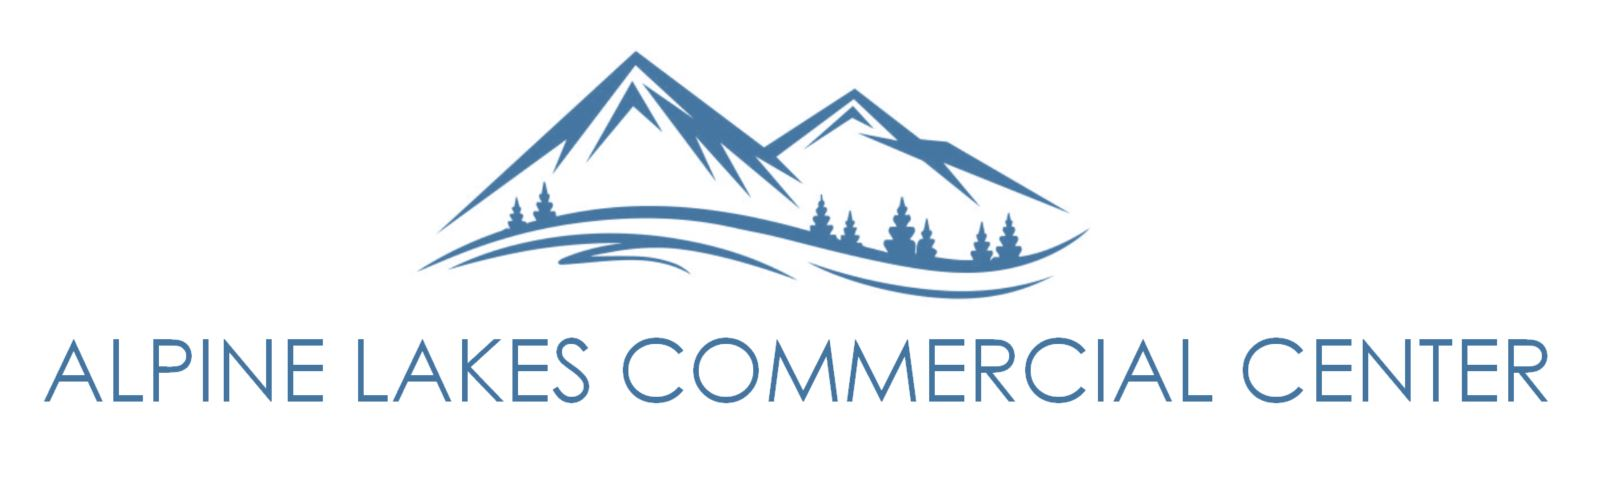 Alpine Lakes Commercial Center LLC